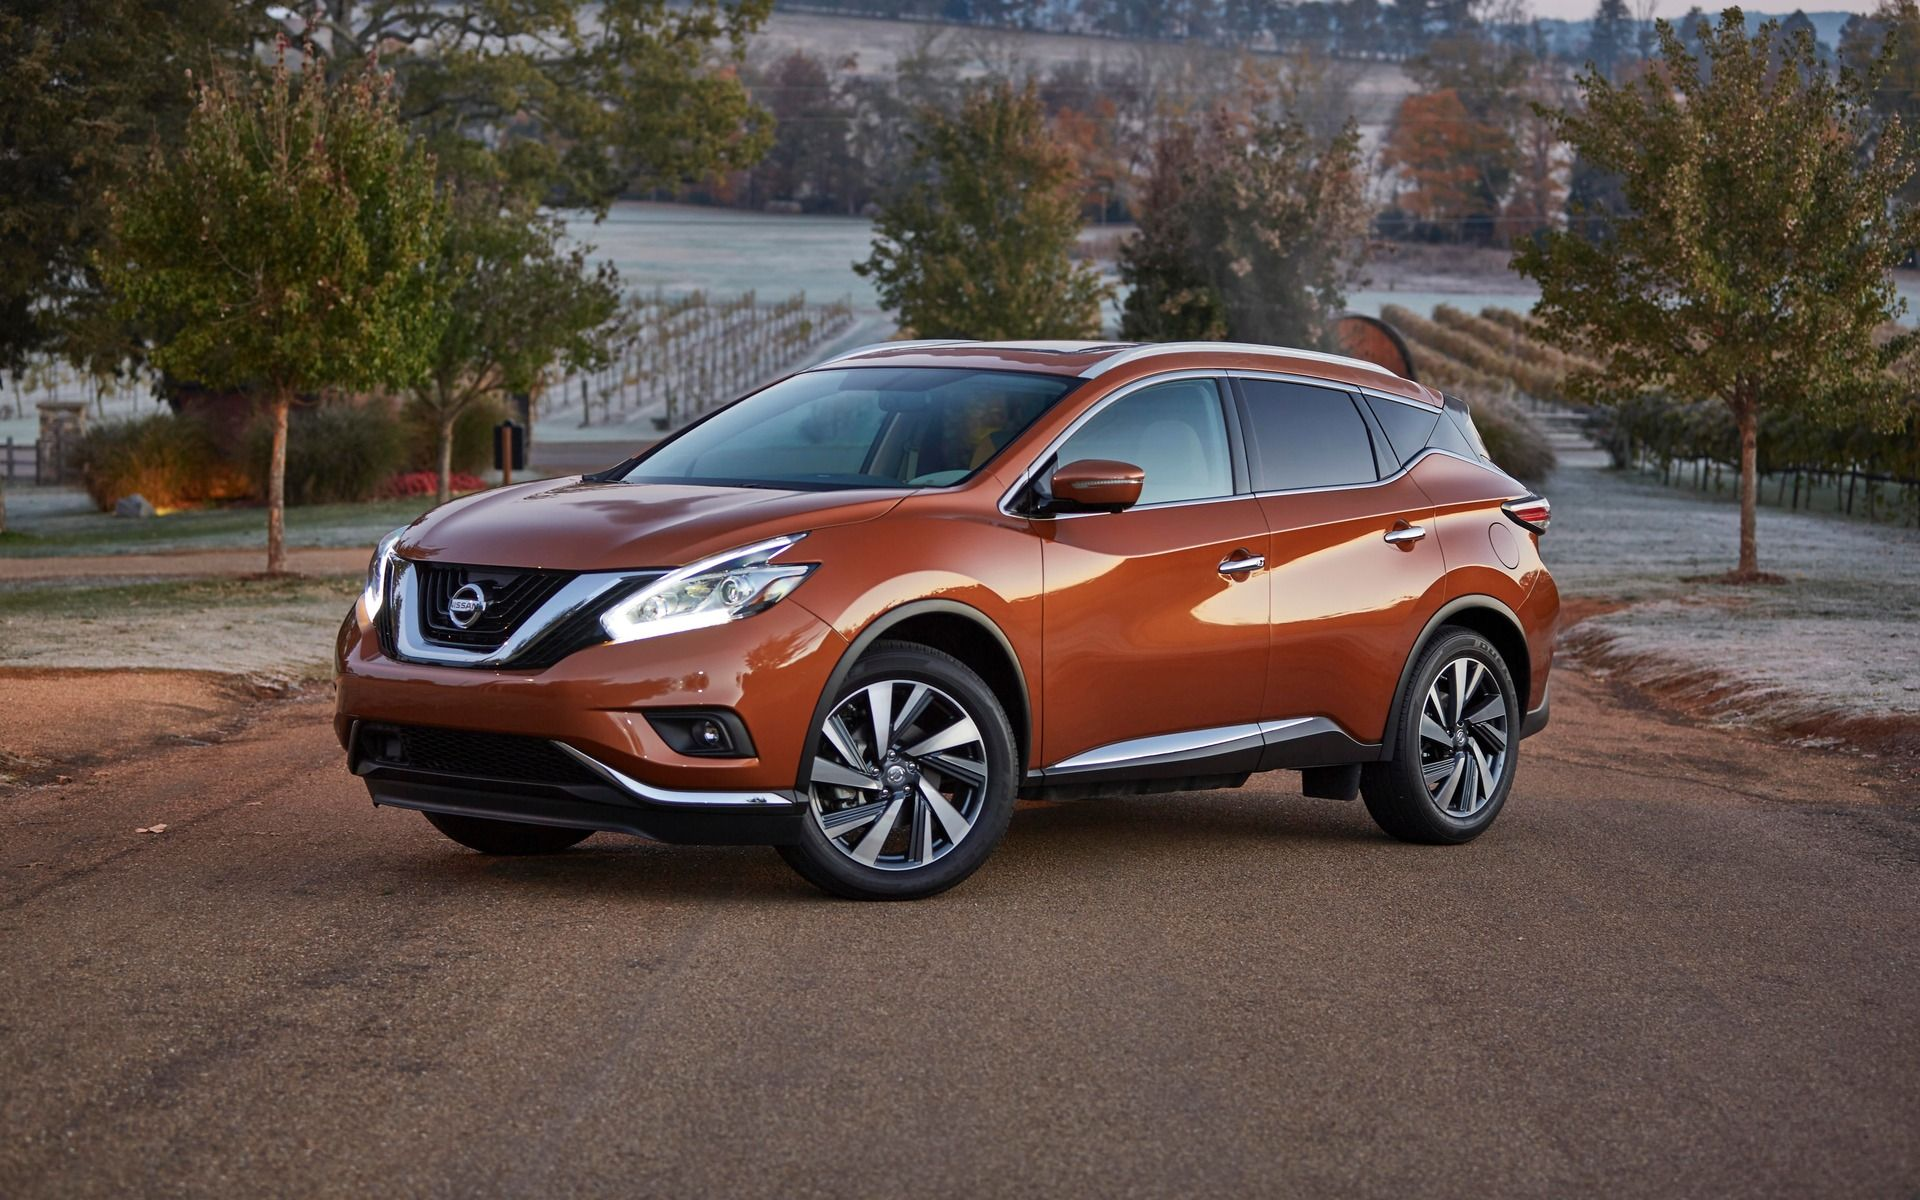 2018 Nissan Murano Colors Release Date Redesign Price The